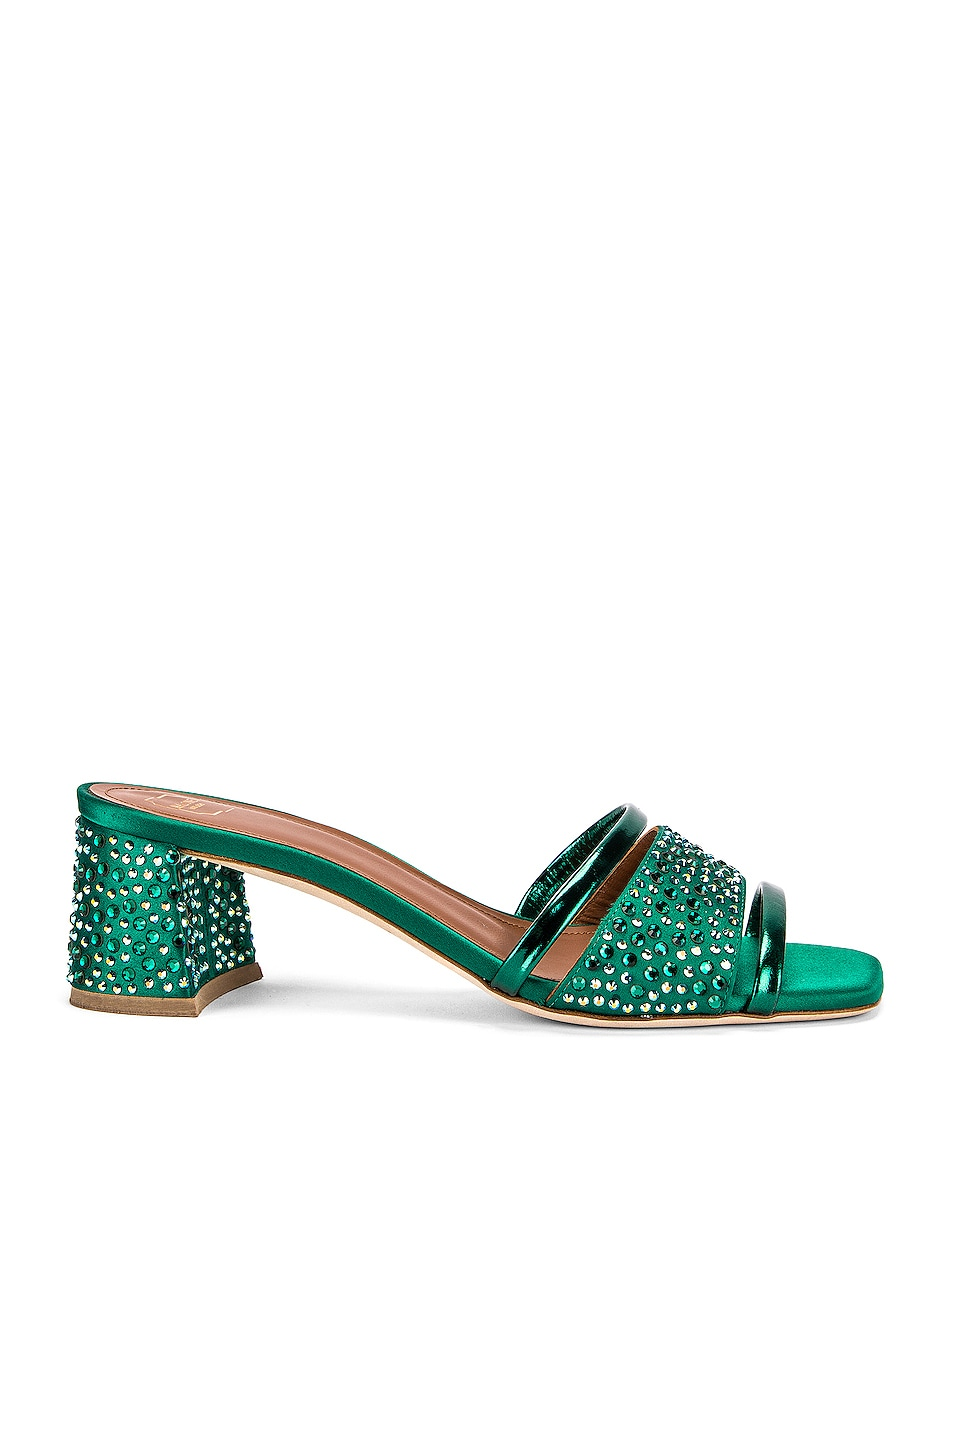 Image 1 of Malone Souliers Rosa 45 Mule in Emerald Green